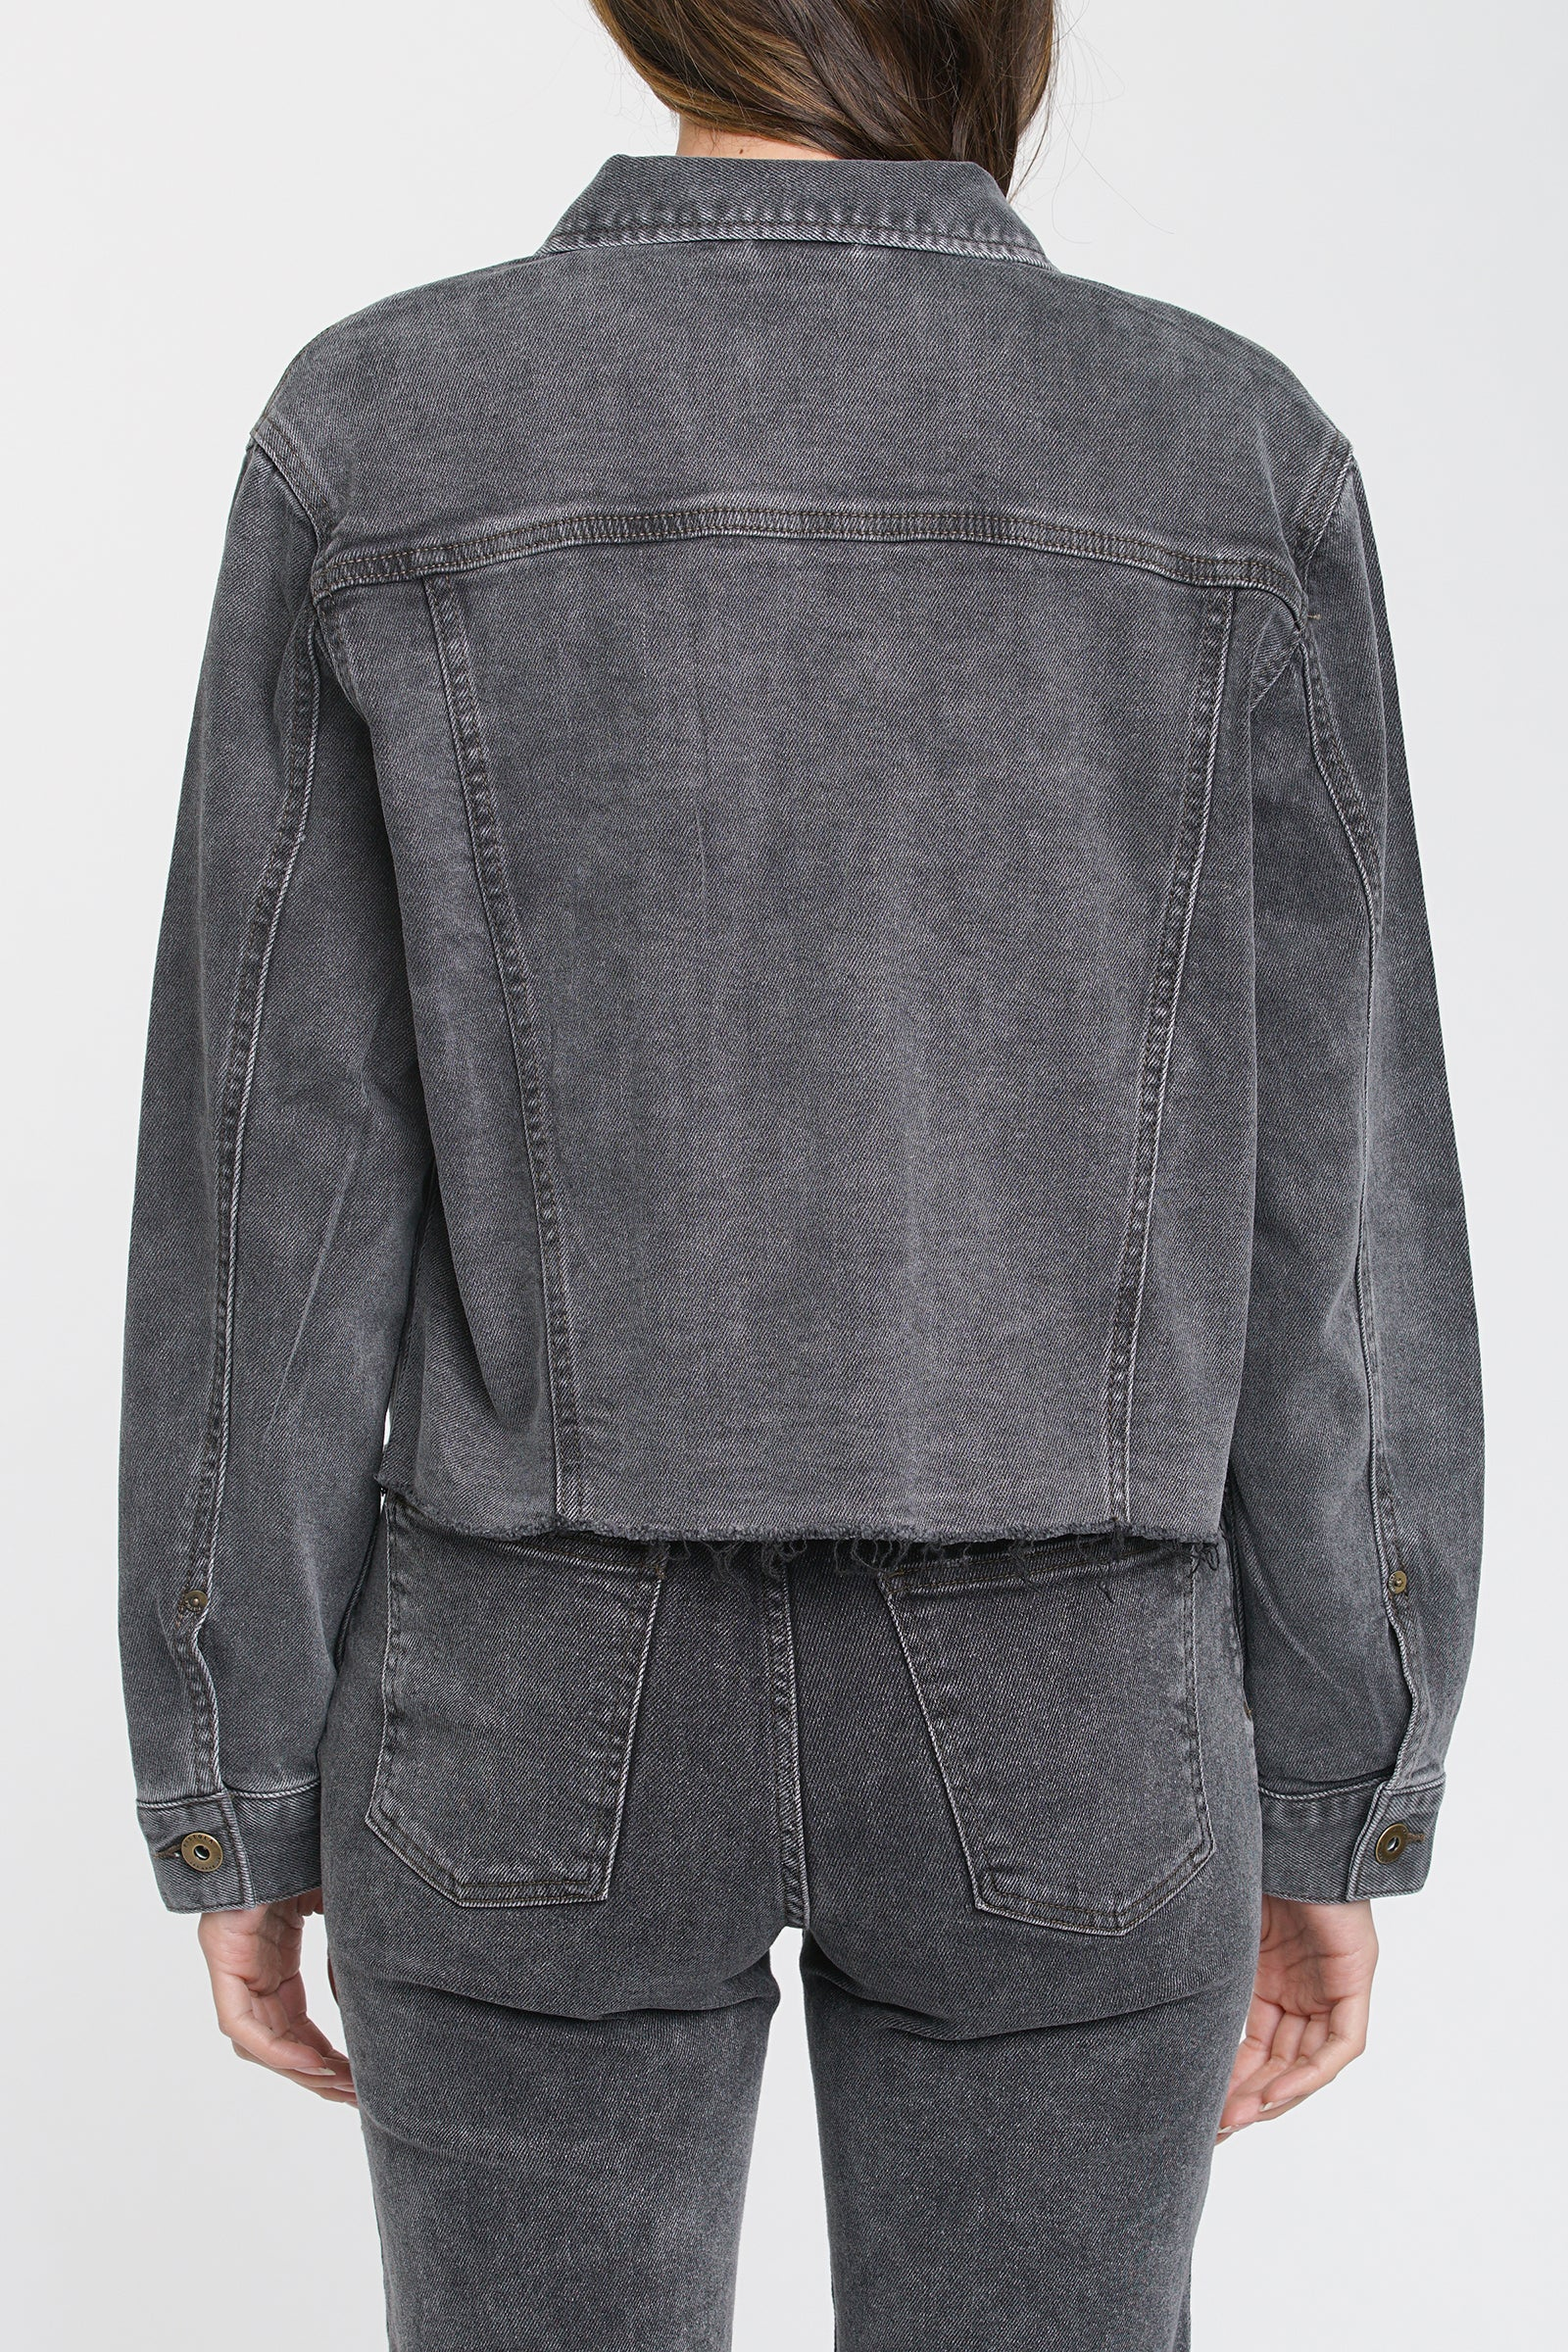 Naya Crop Boyfriend Denim Jacket - Memento